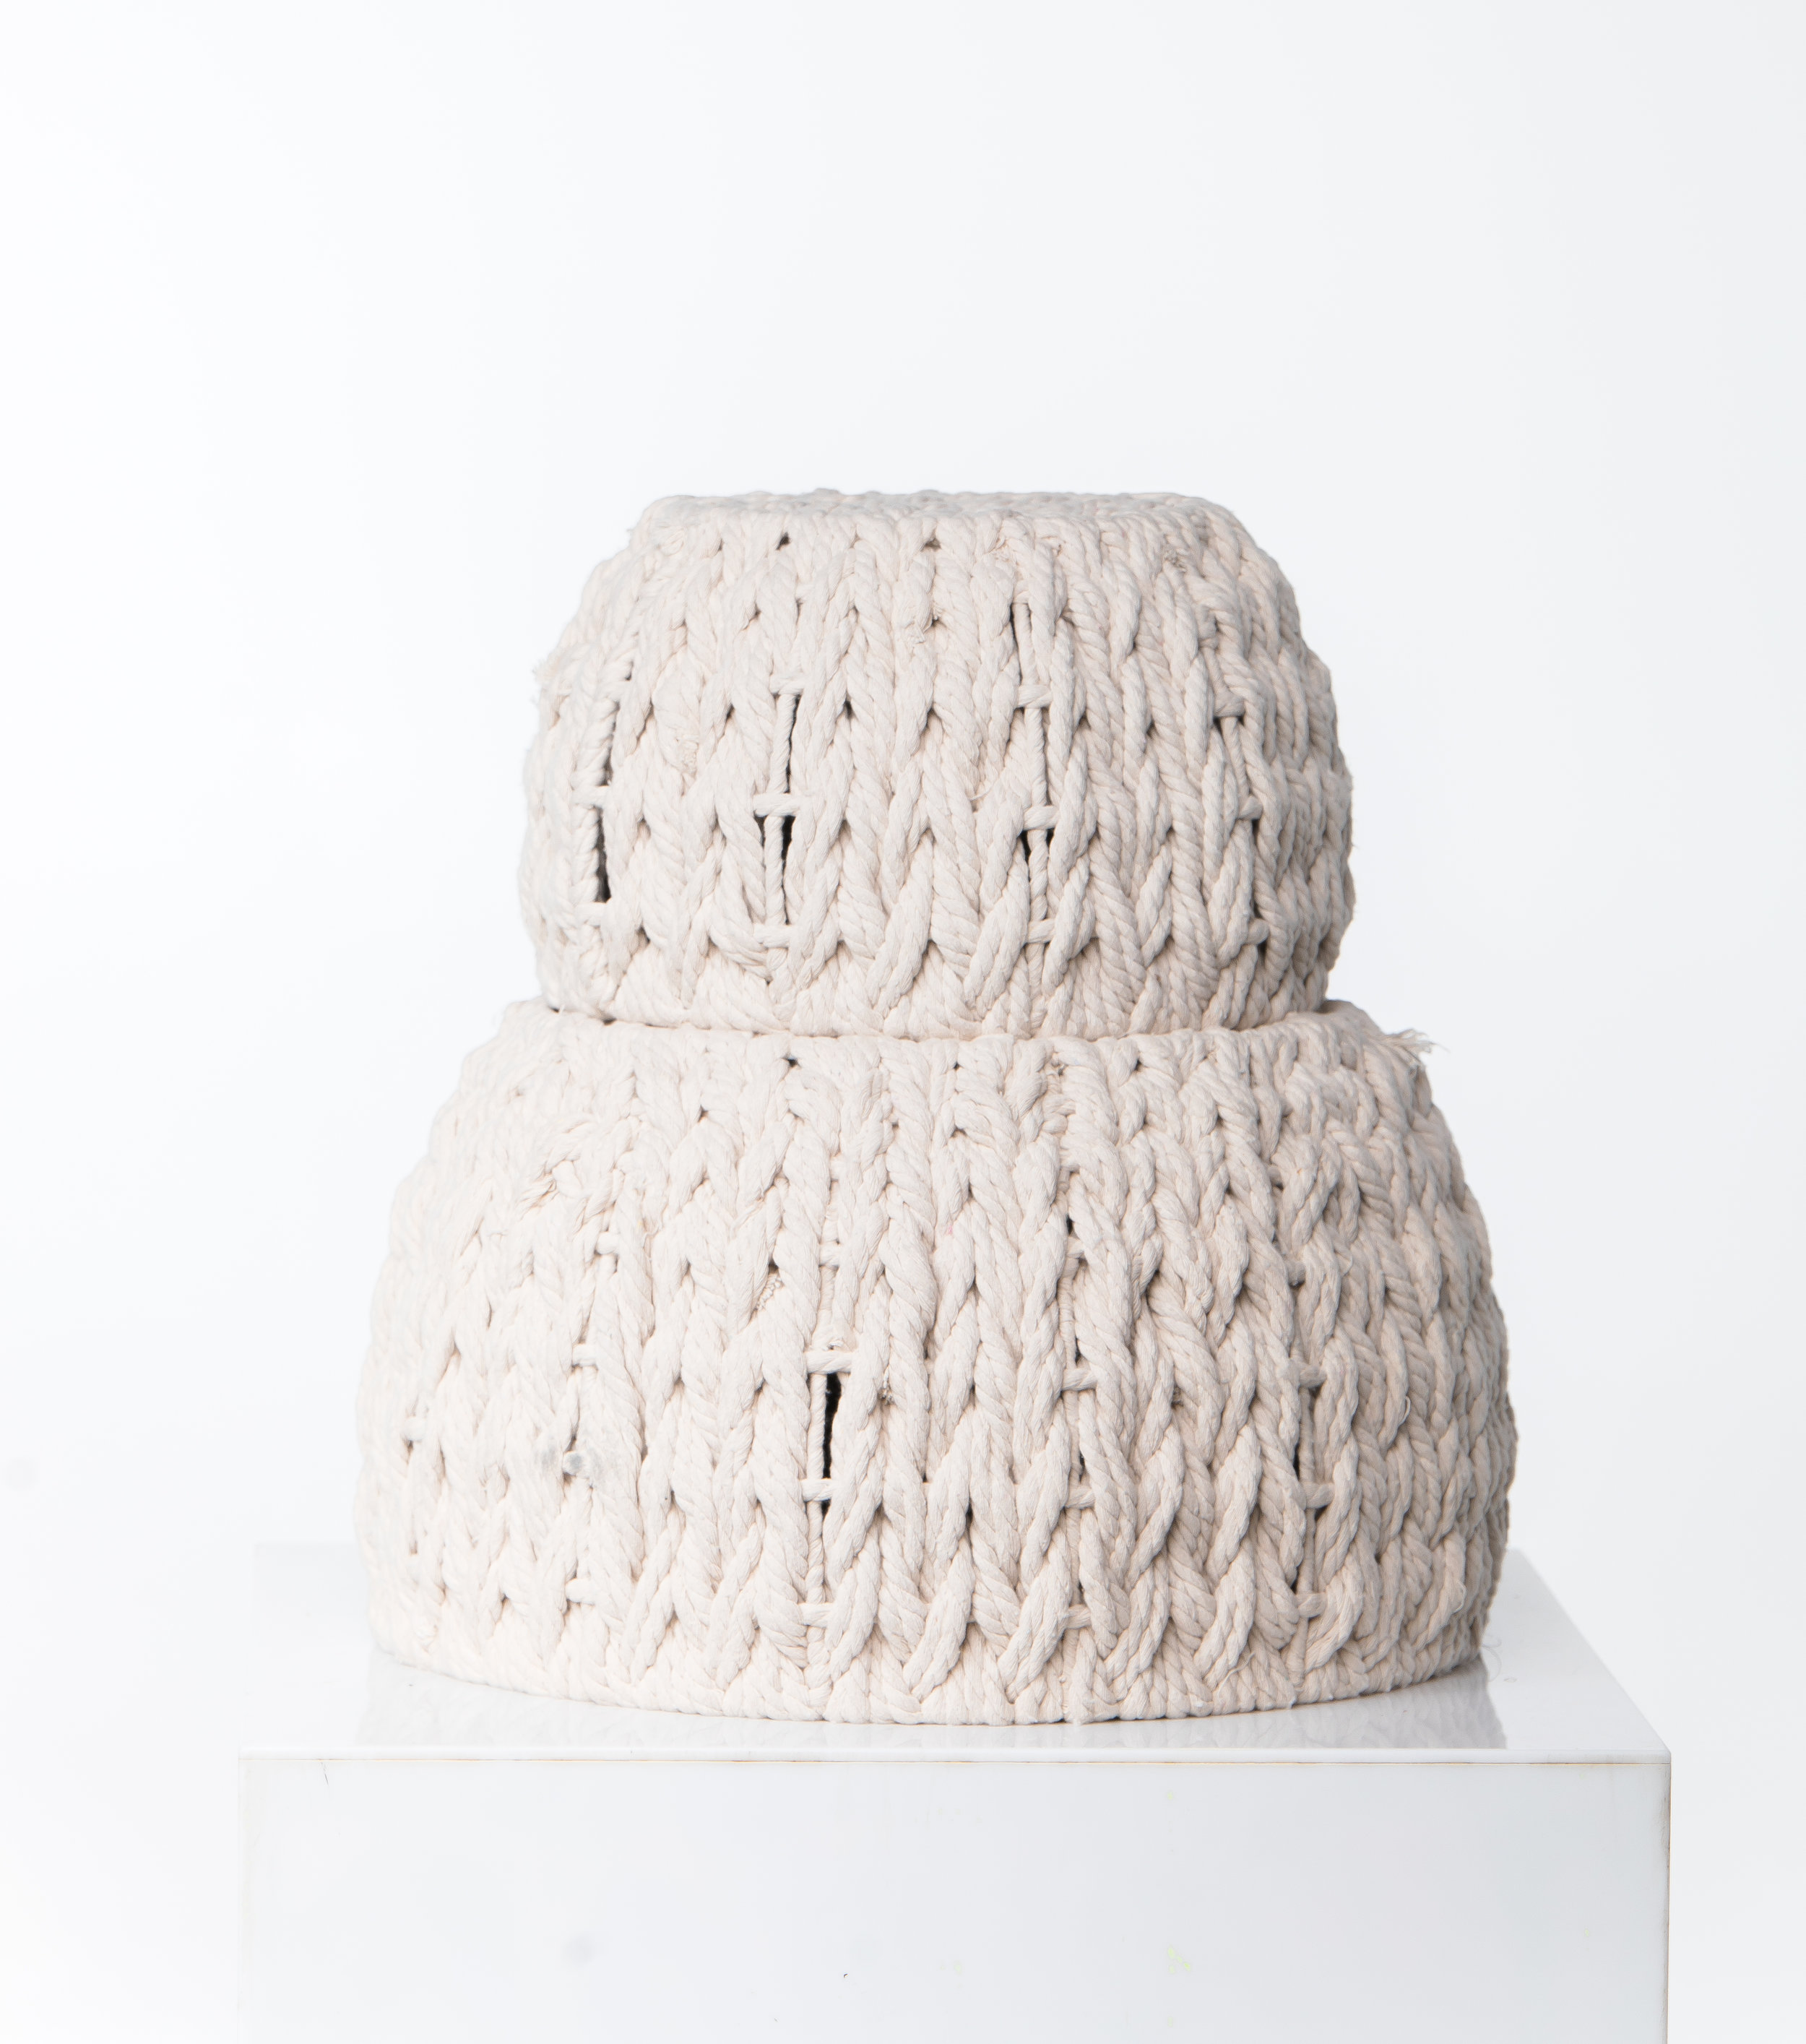 STACKED WOVEN BASKETS